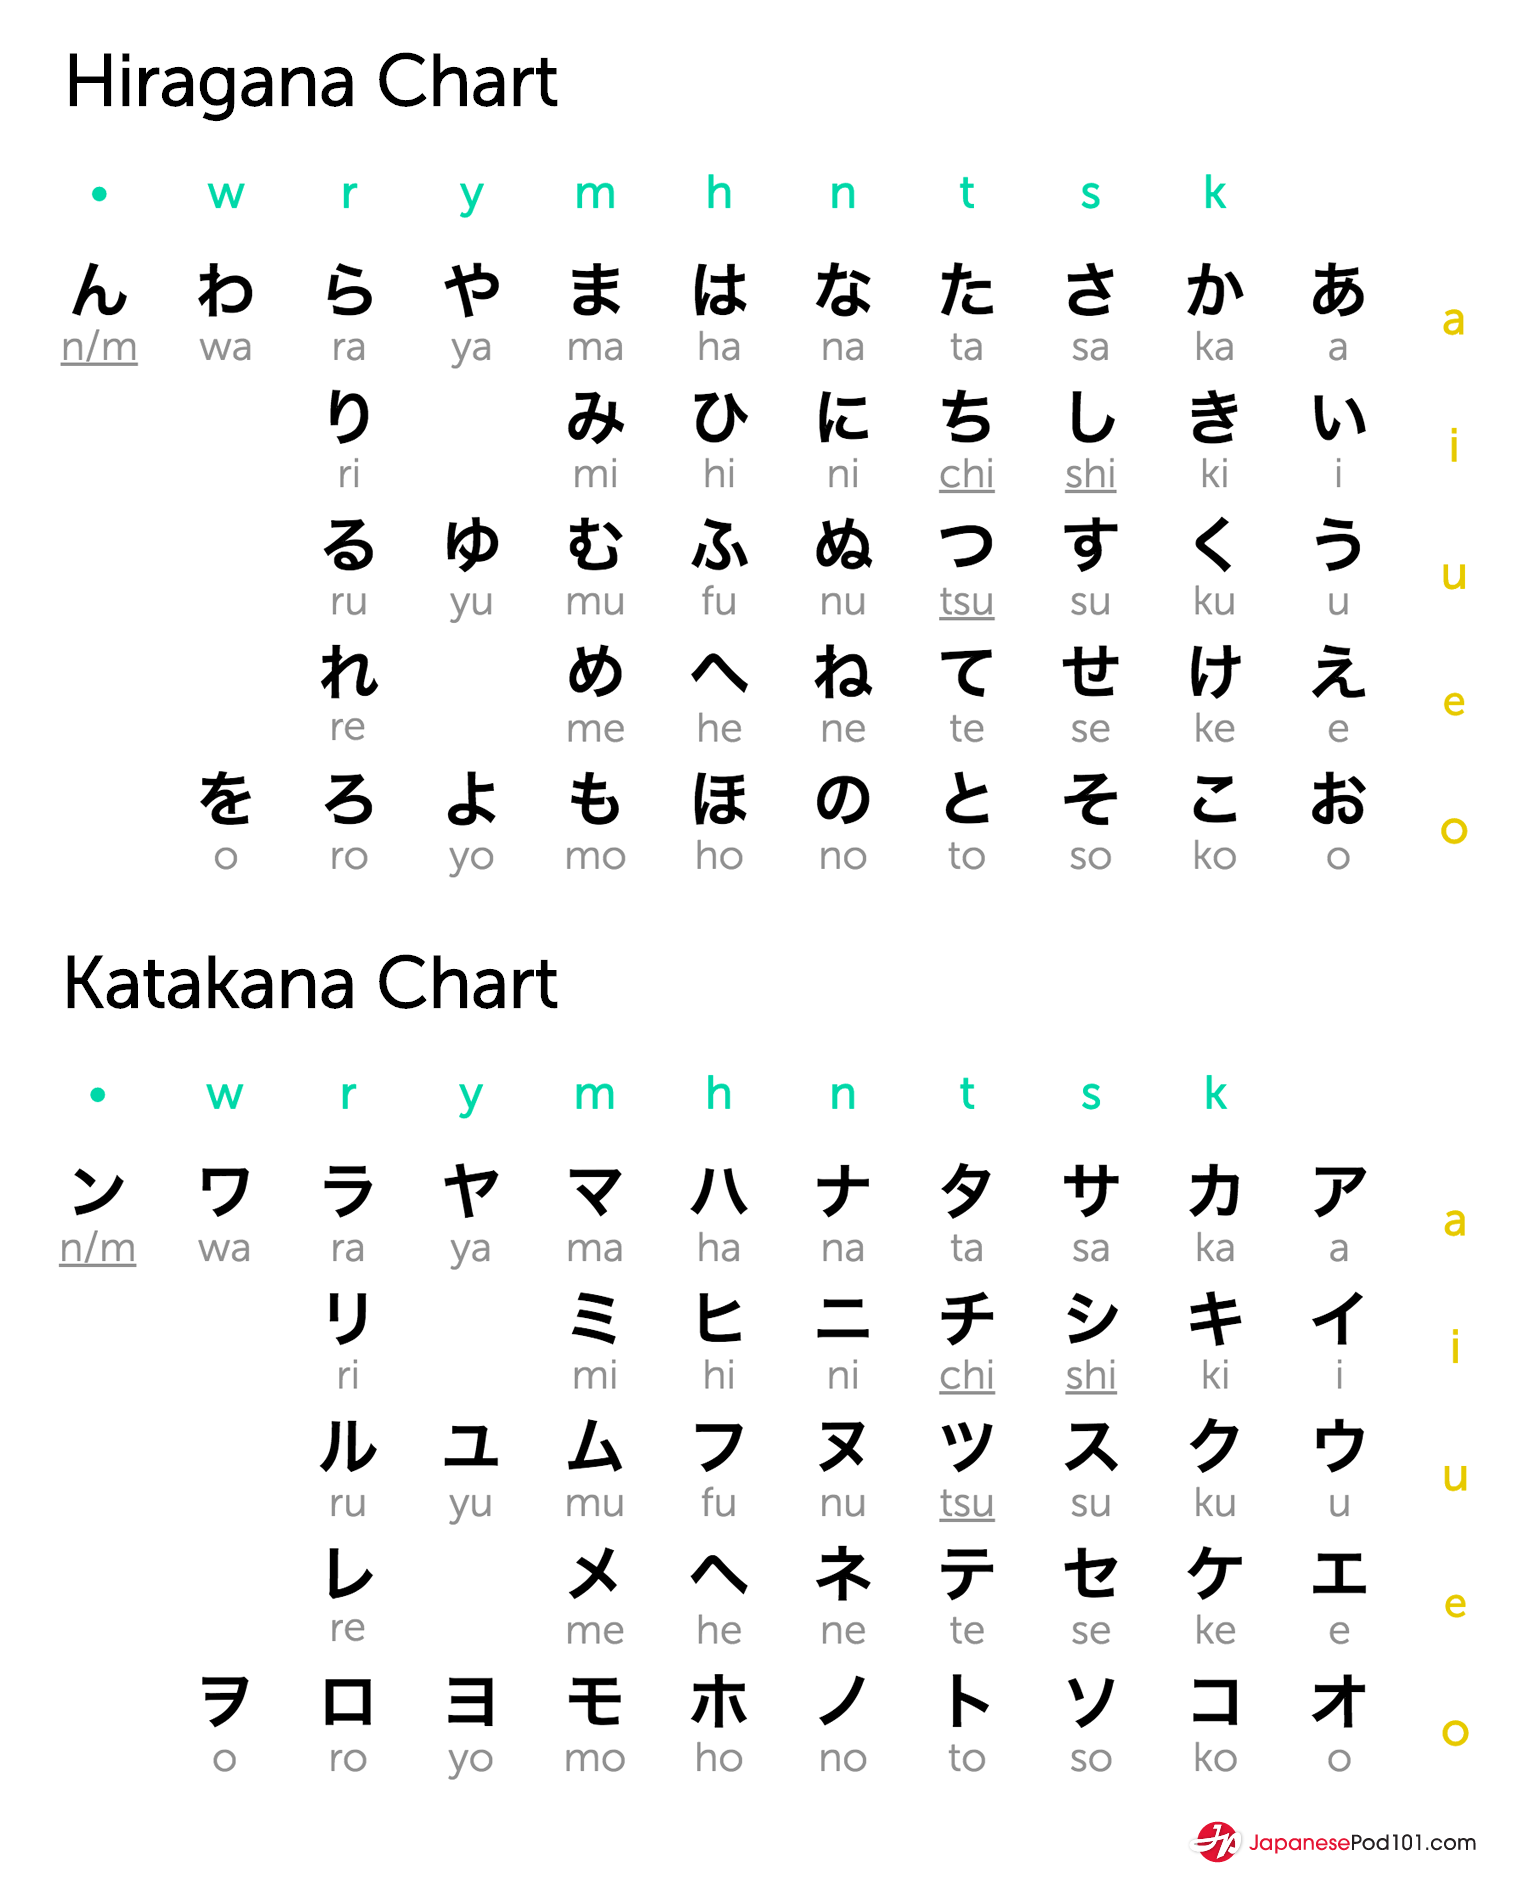 Romanization of Japanese